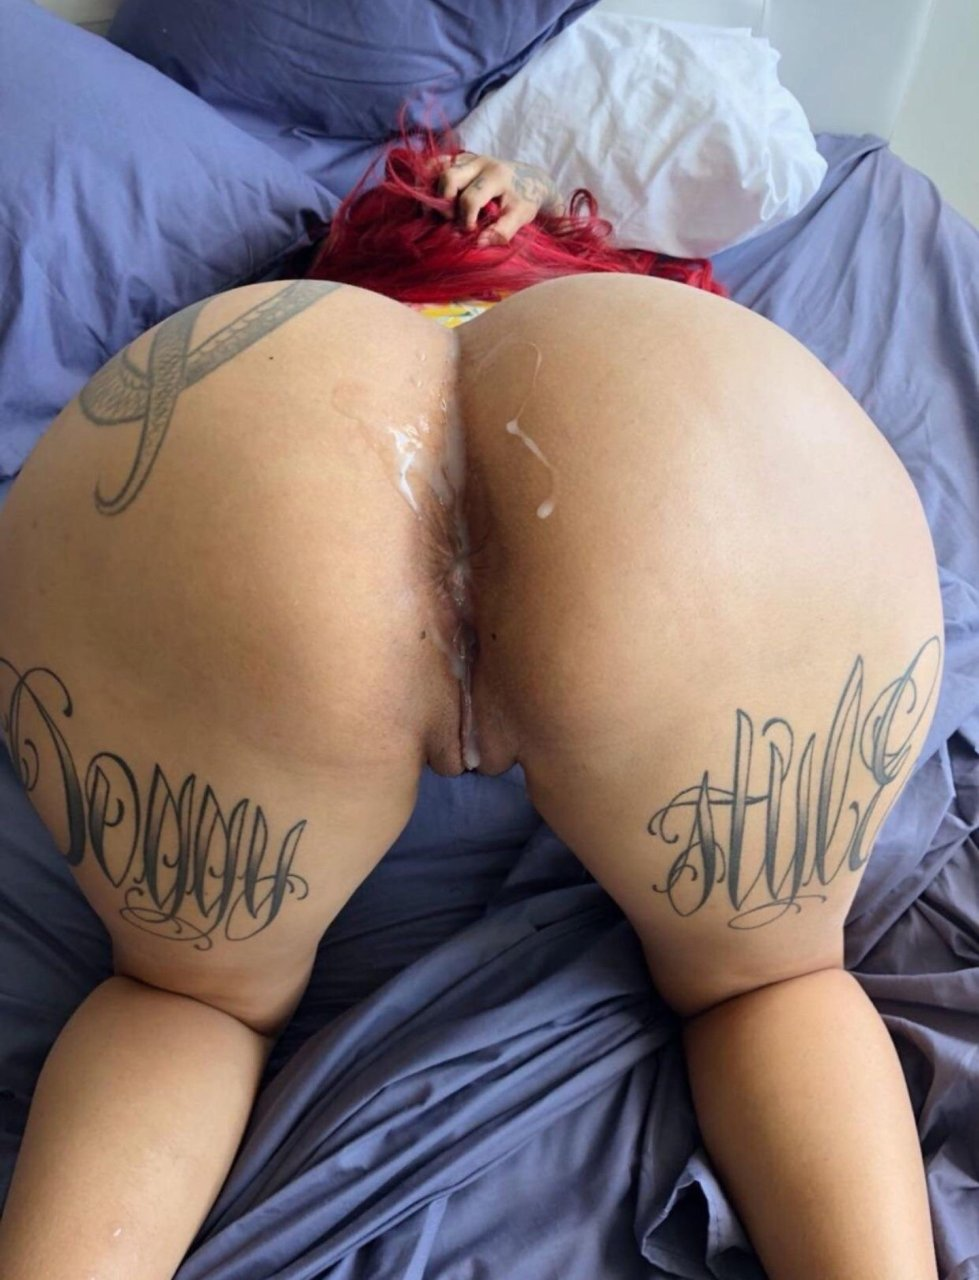 What that Brittanya o campo porn excellent